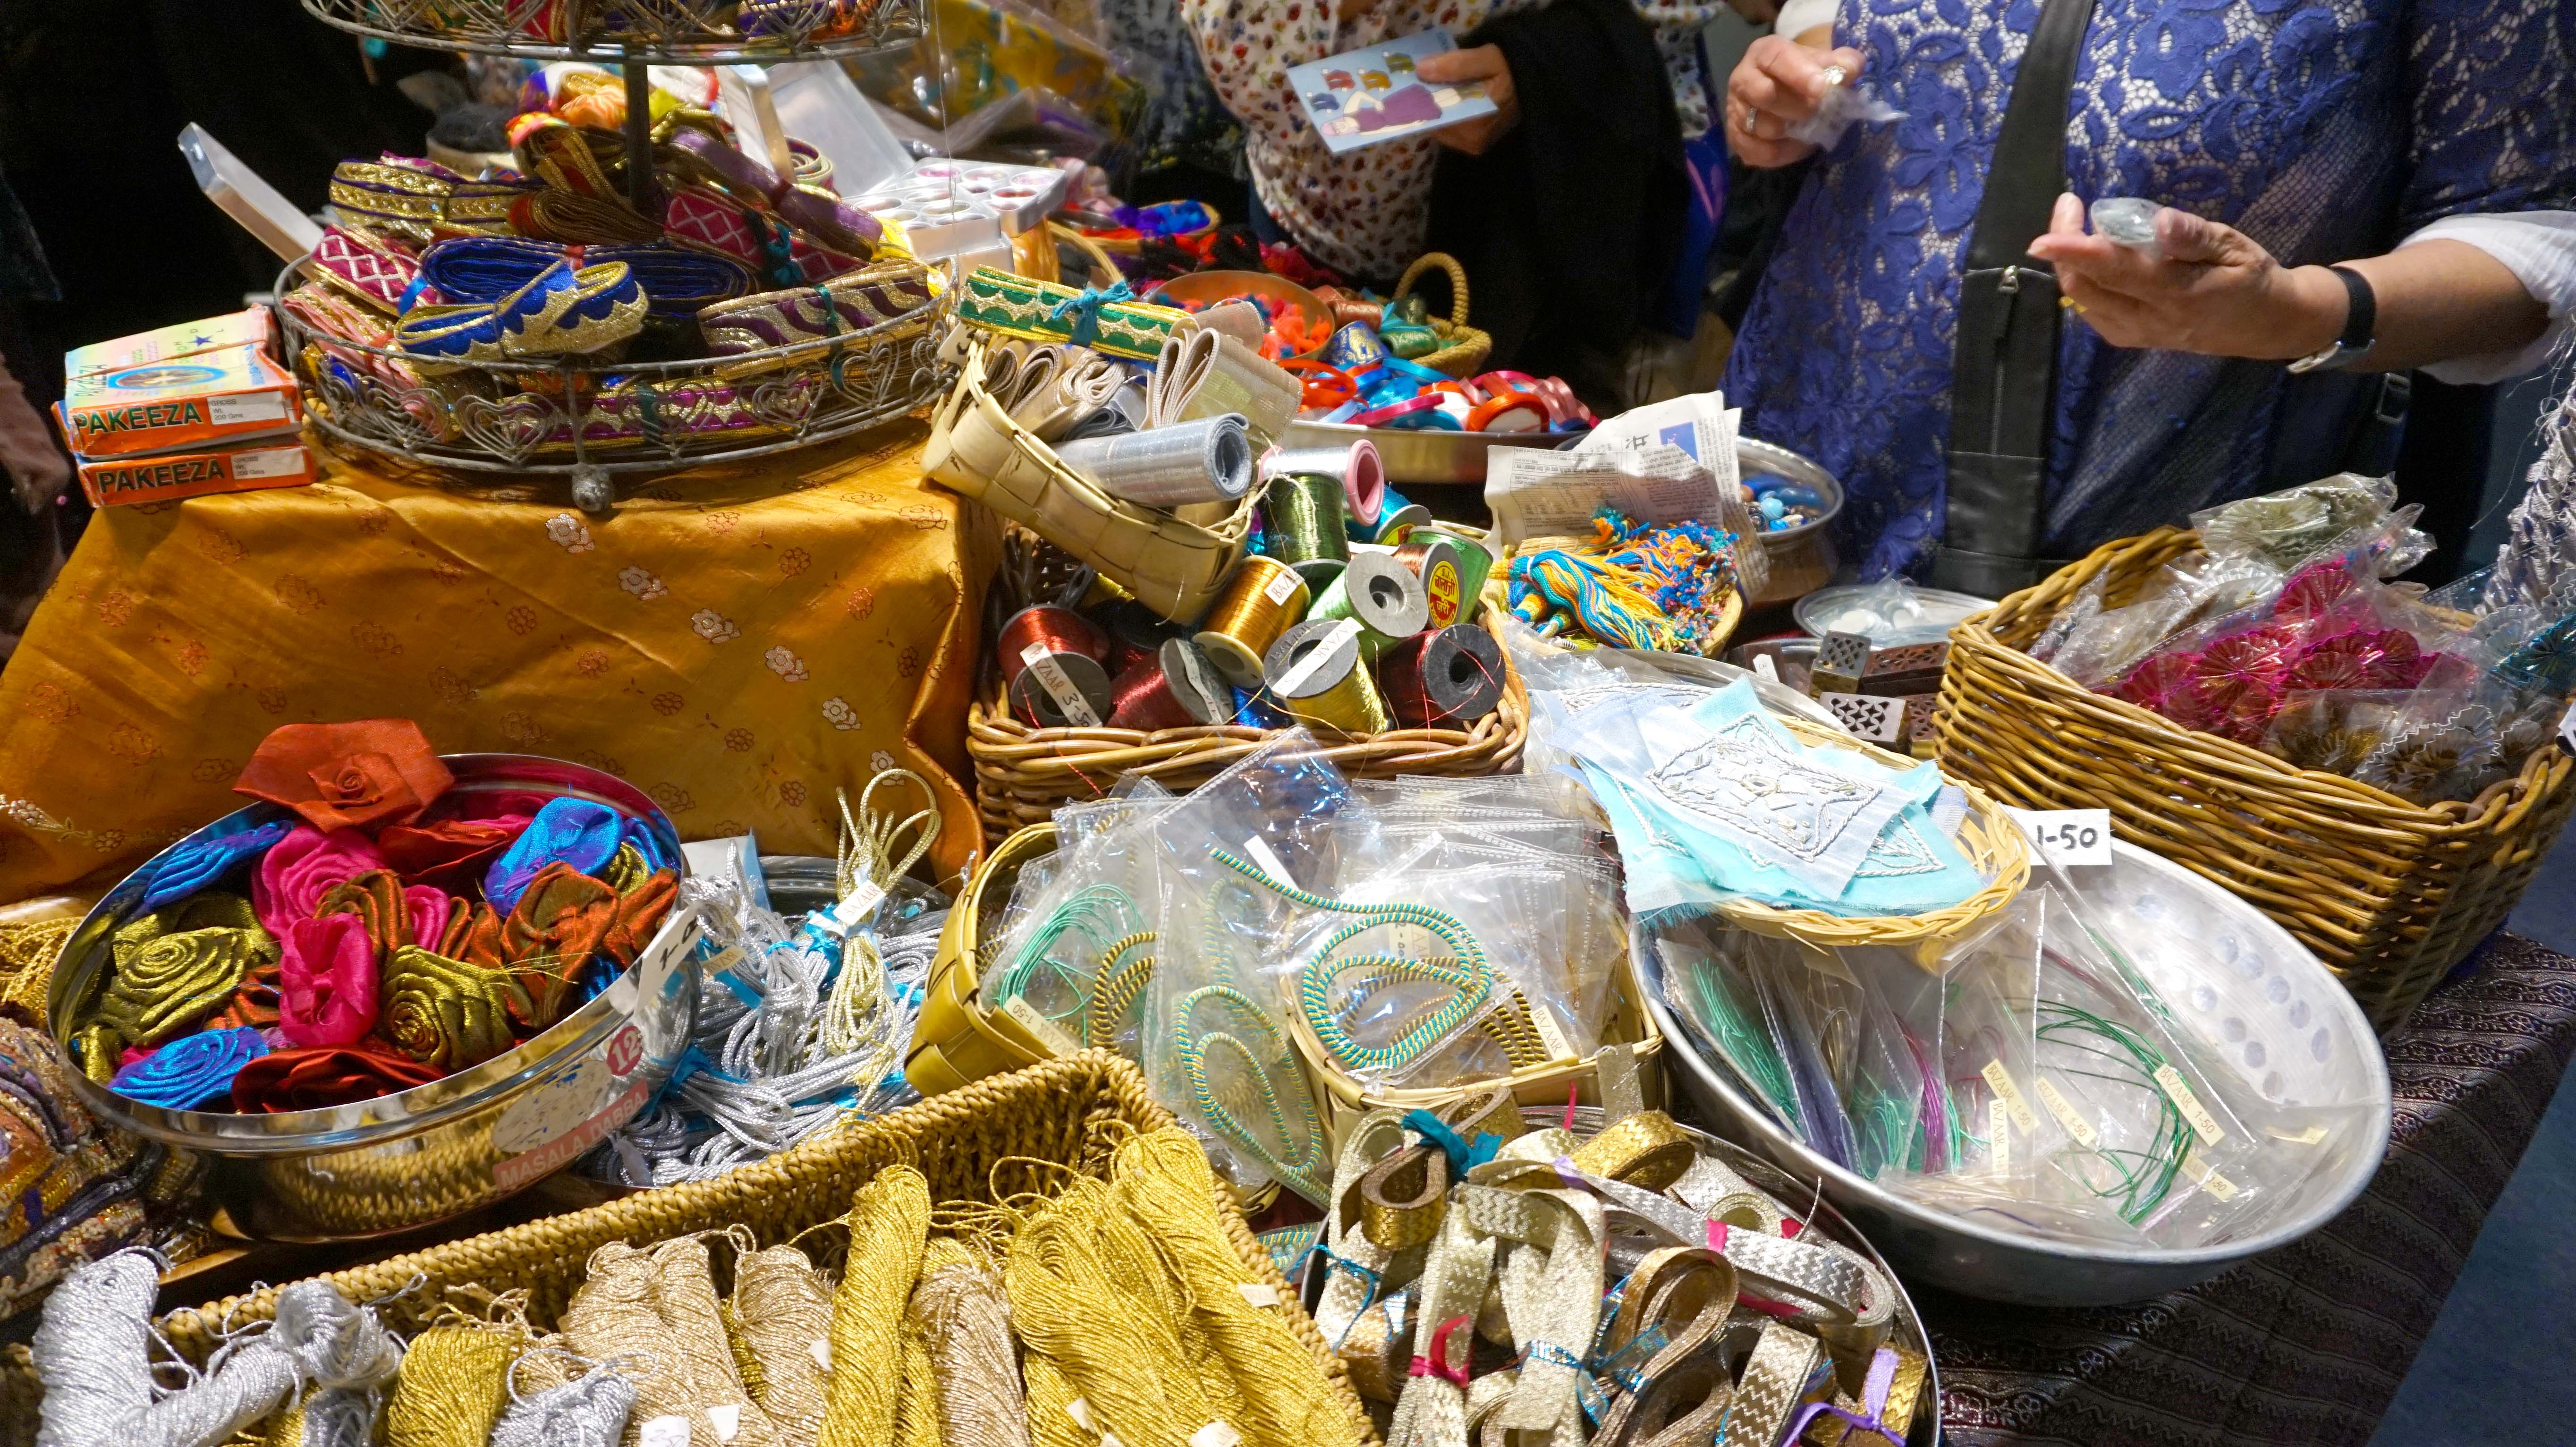 The Knitting And Stitching Show 2017 : Ragged Life Blog Highlights from the Knitting and Stitching Show 2017 - Rag...